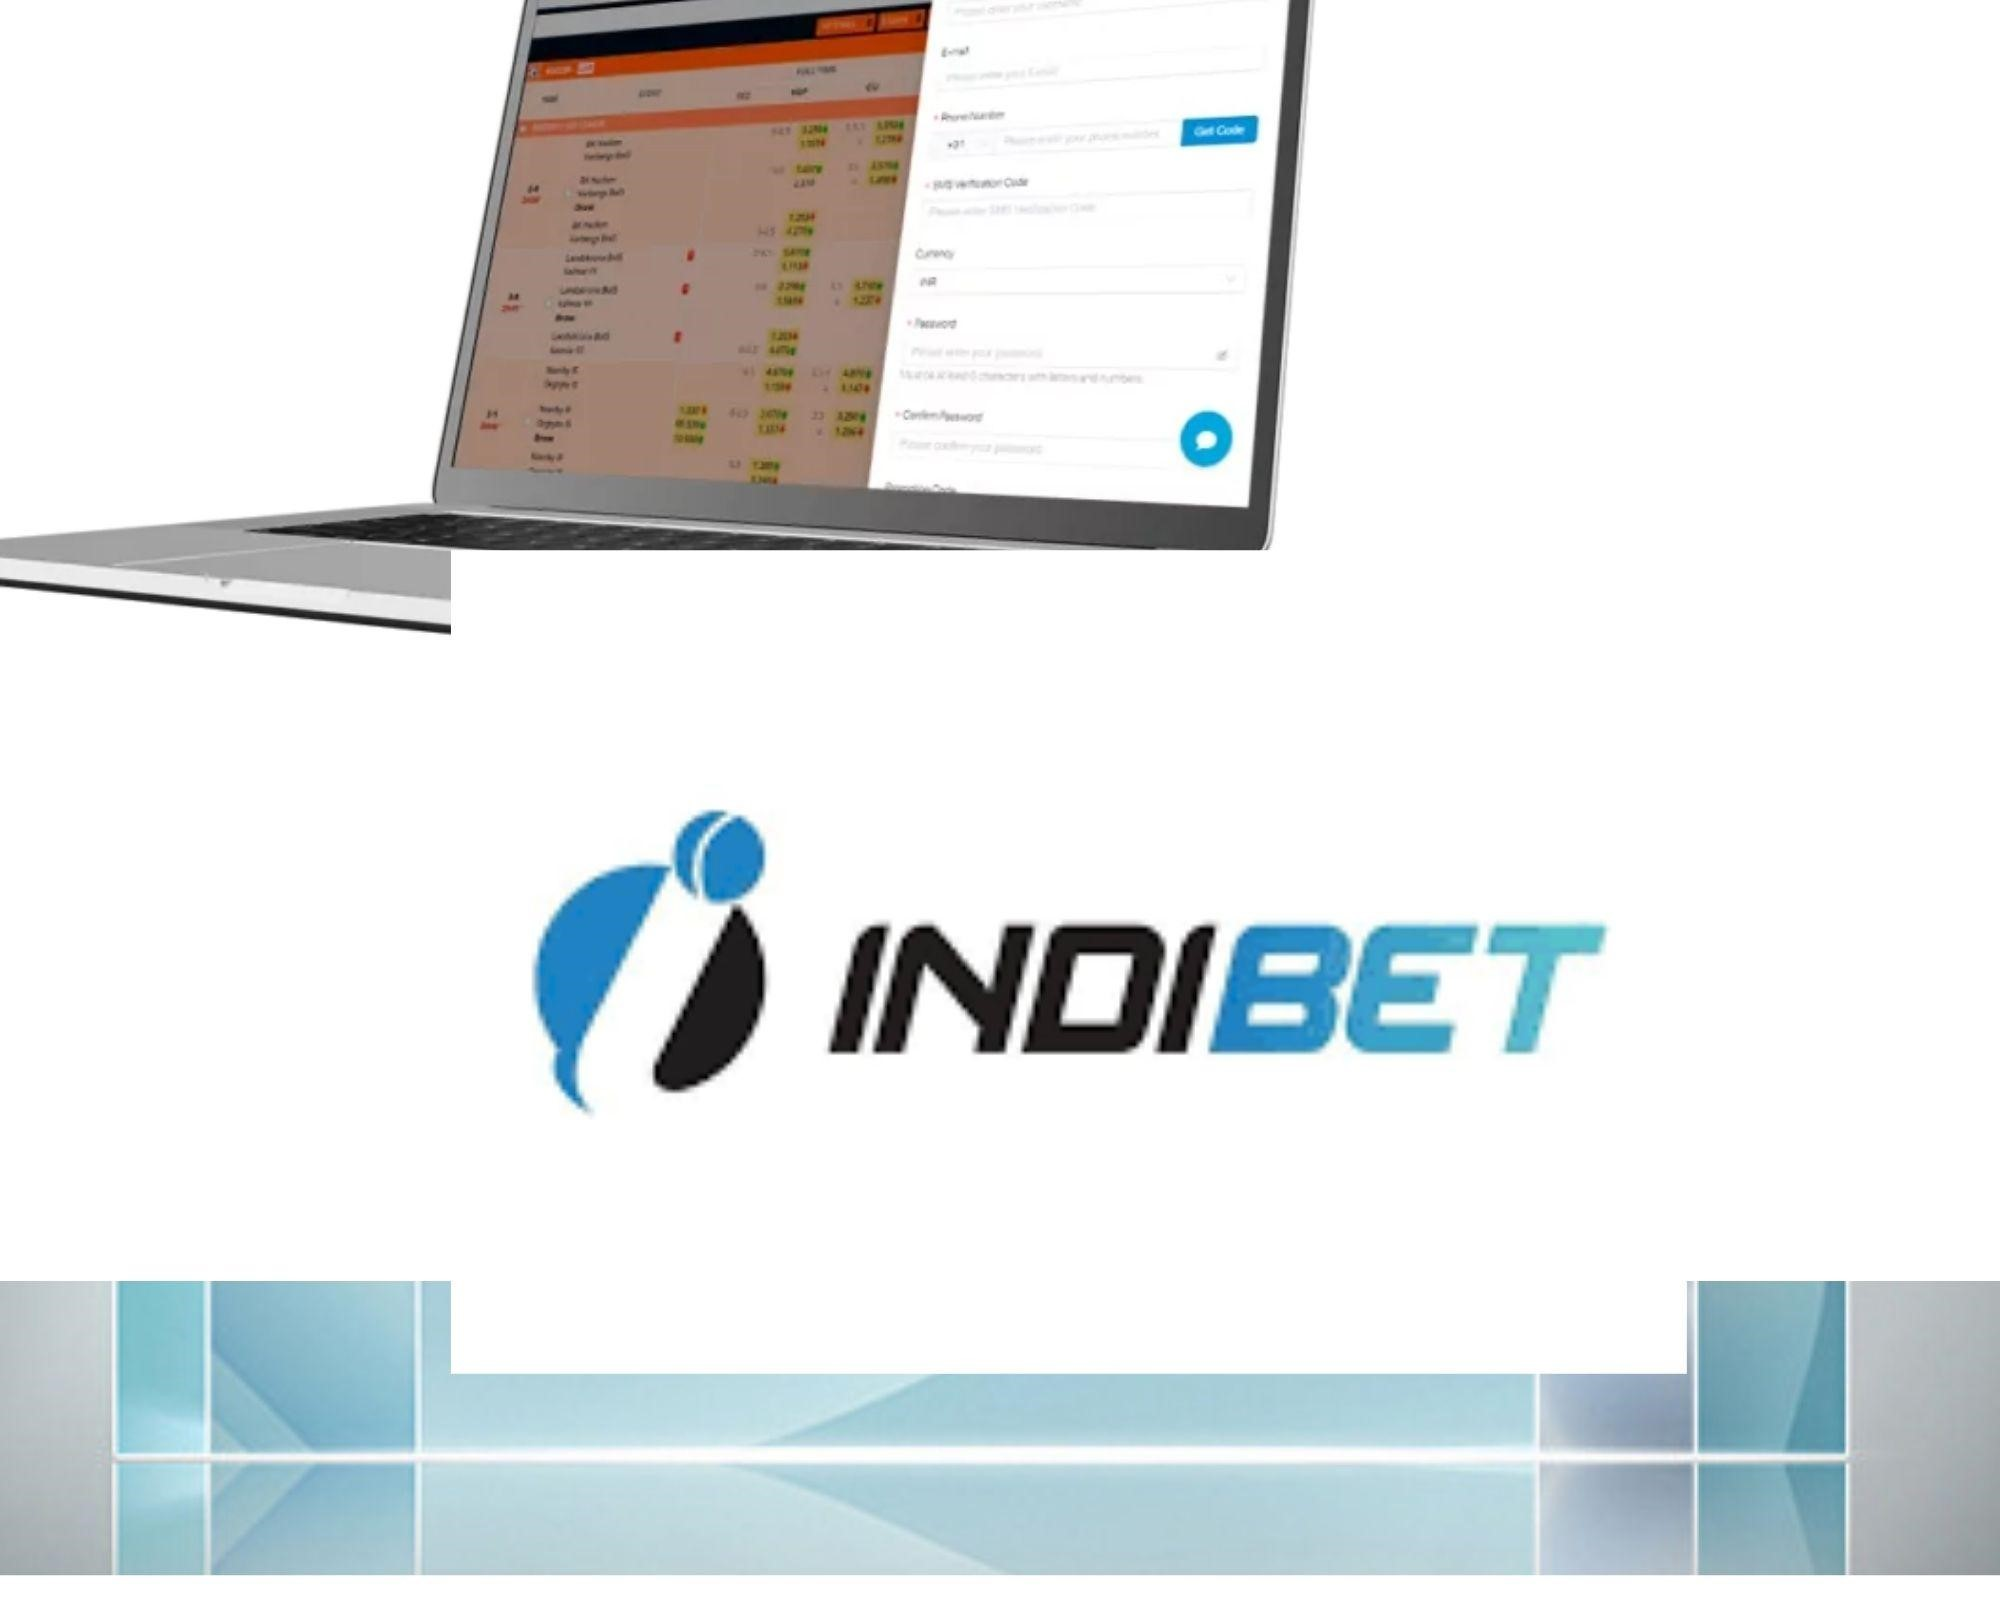 How to use the Indibet app